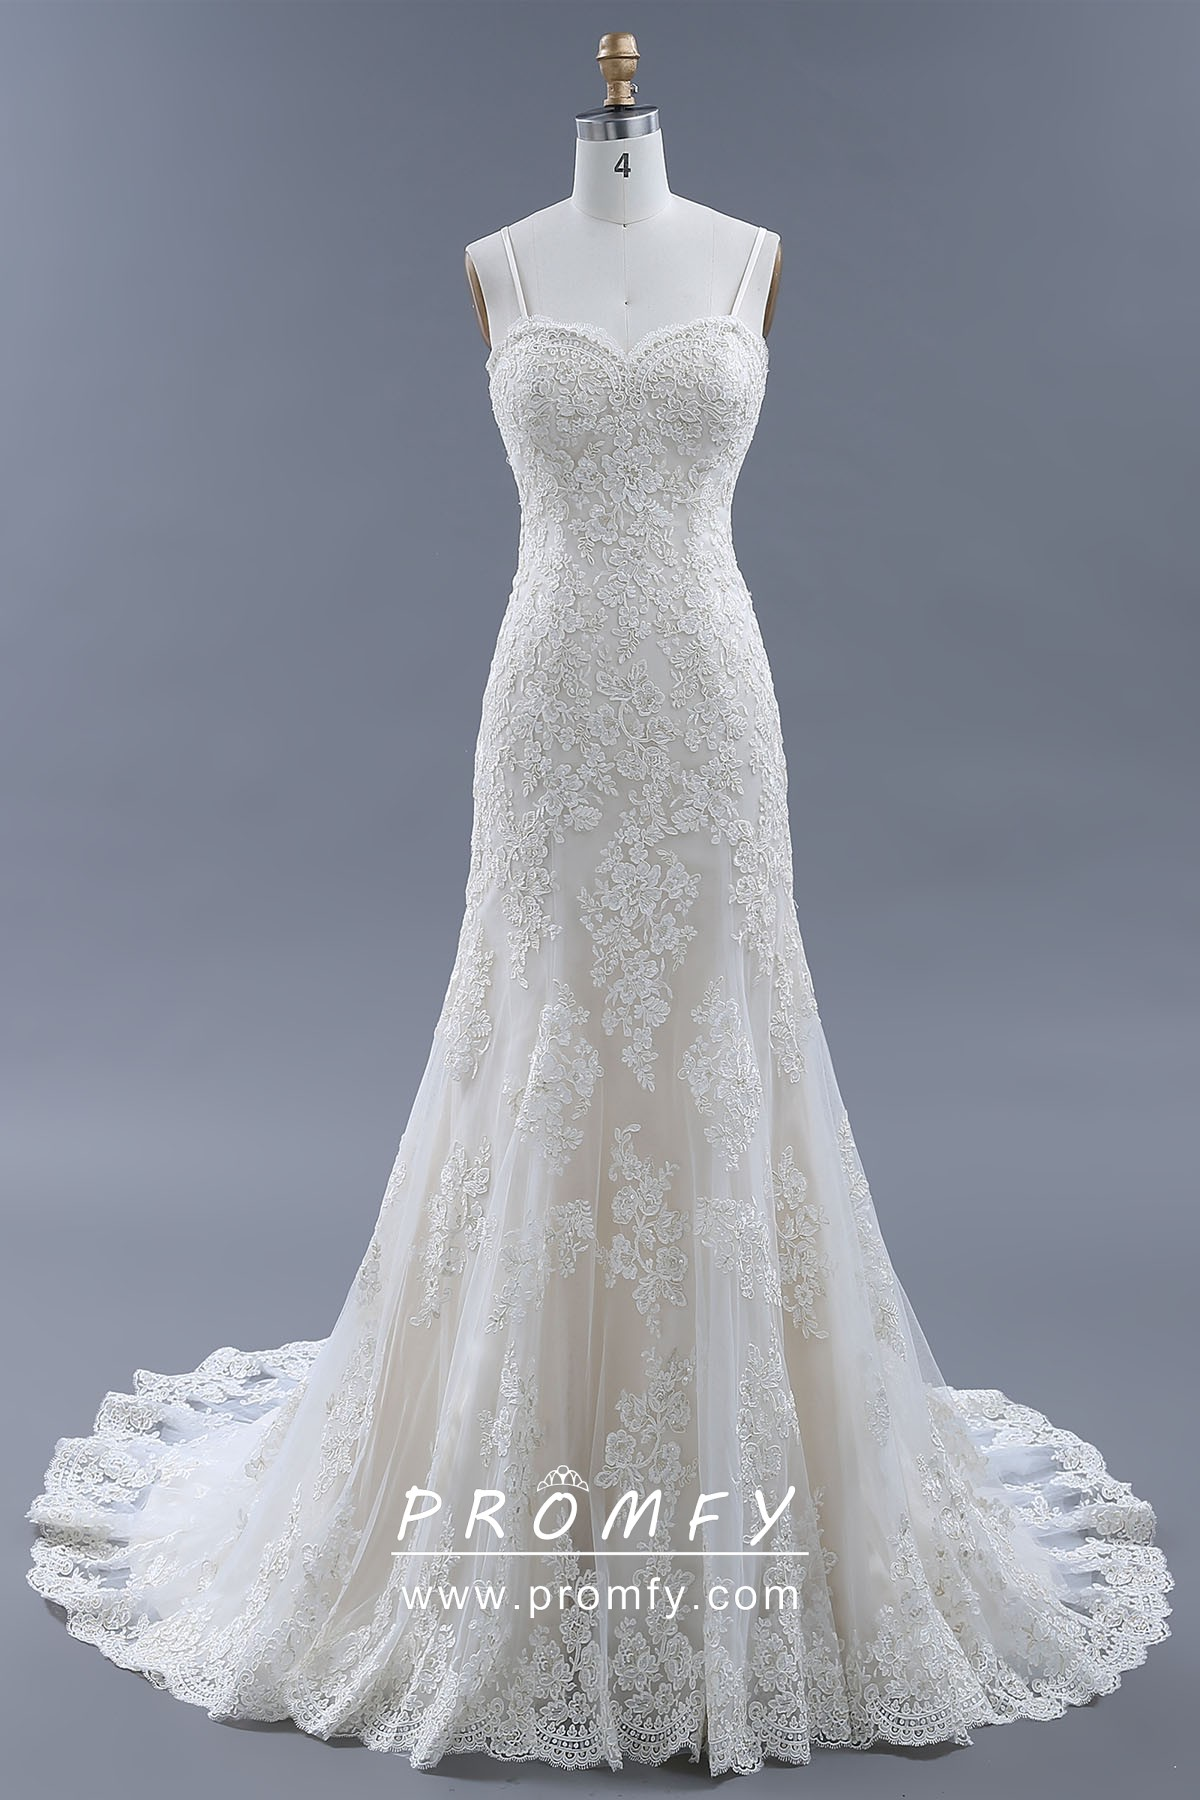 Sweetheart Neckline Trumpet Wedding Dresses